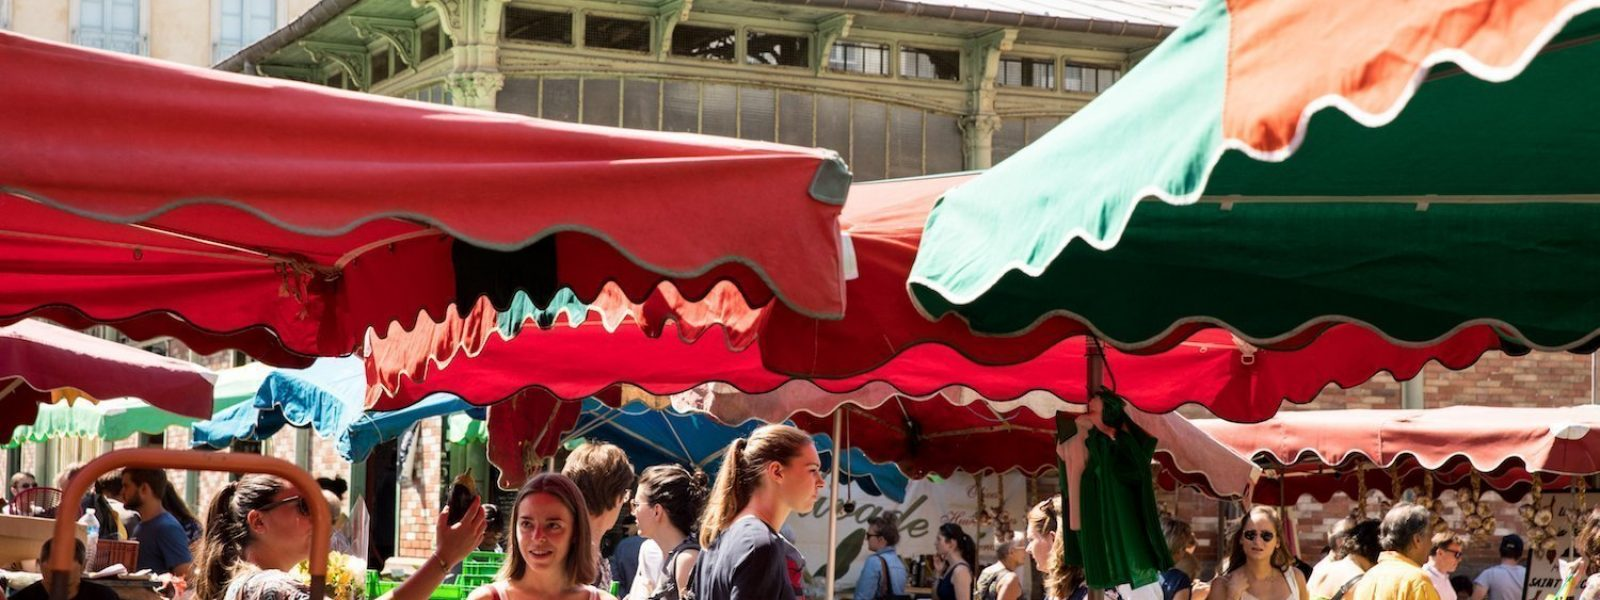 The Lices markets in Rennes